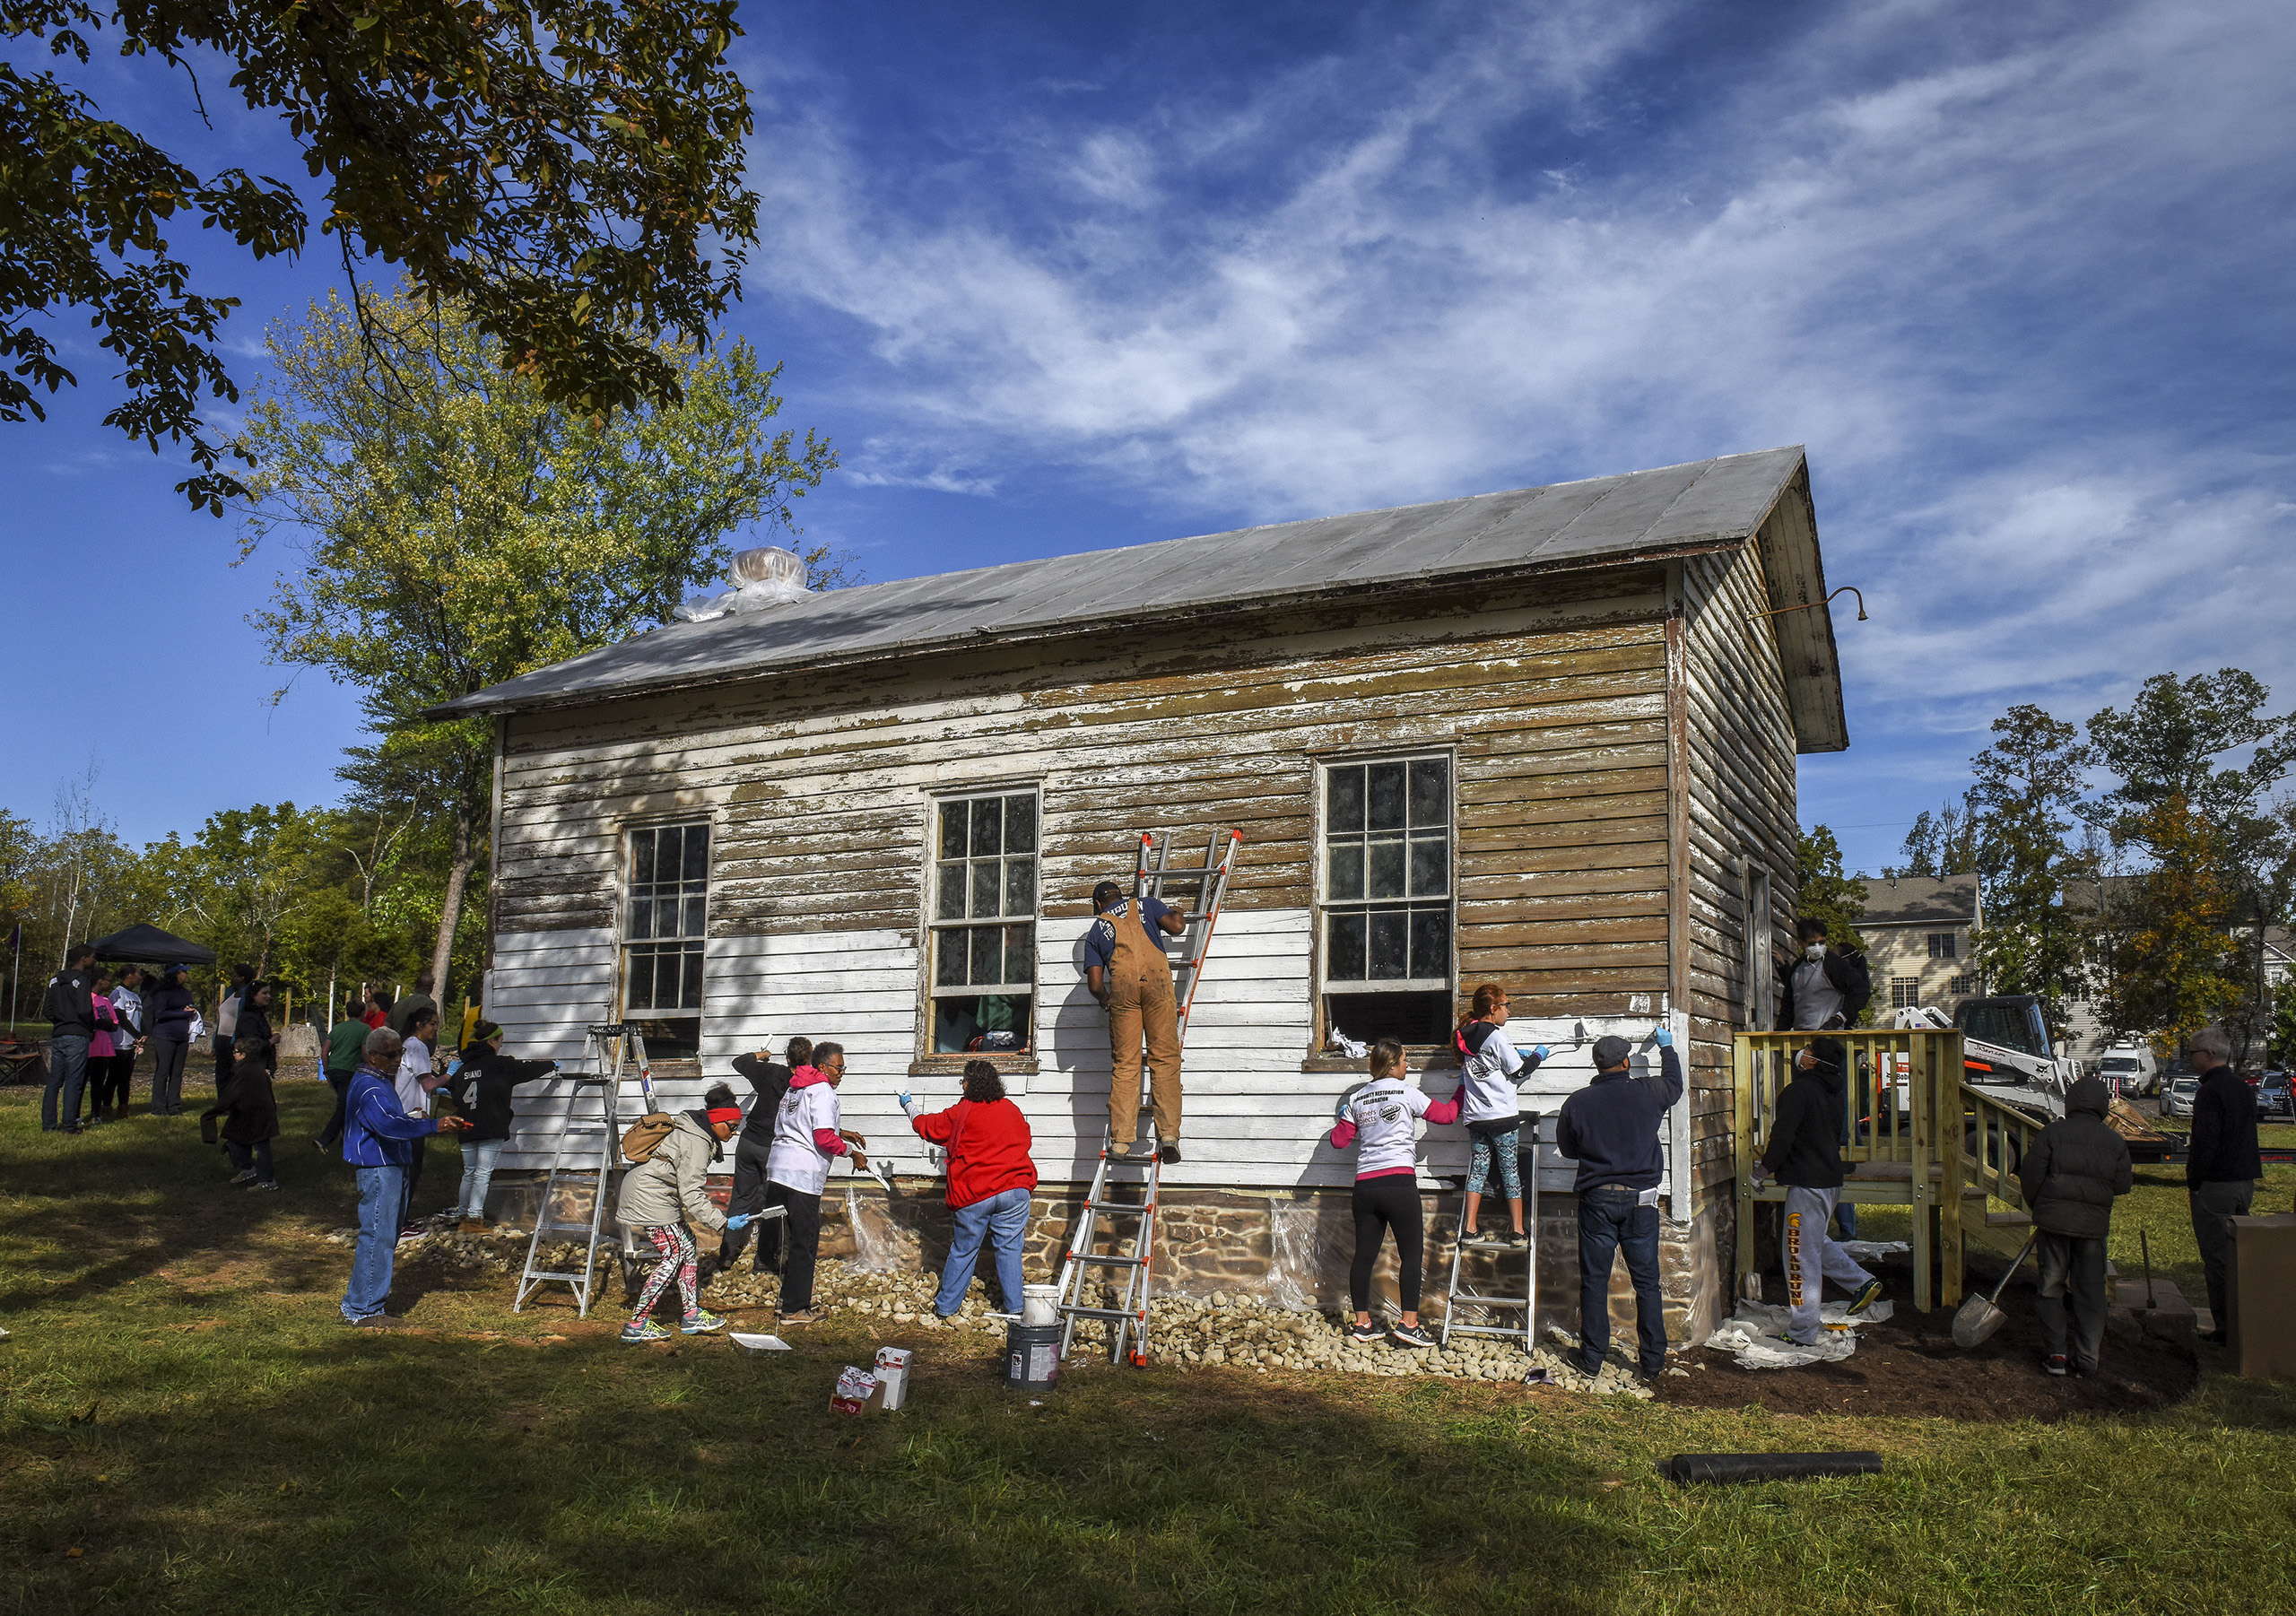 A group tackles painting the exterior as volunteers gather to restore the Ashburn Colored School, a nineteenth-century schoolhouse vandalized with racist symbols and hate language,  in Ashburn, VA on Oct. 9, 2016.